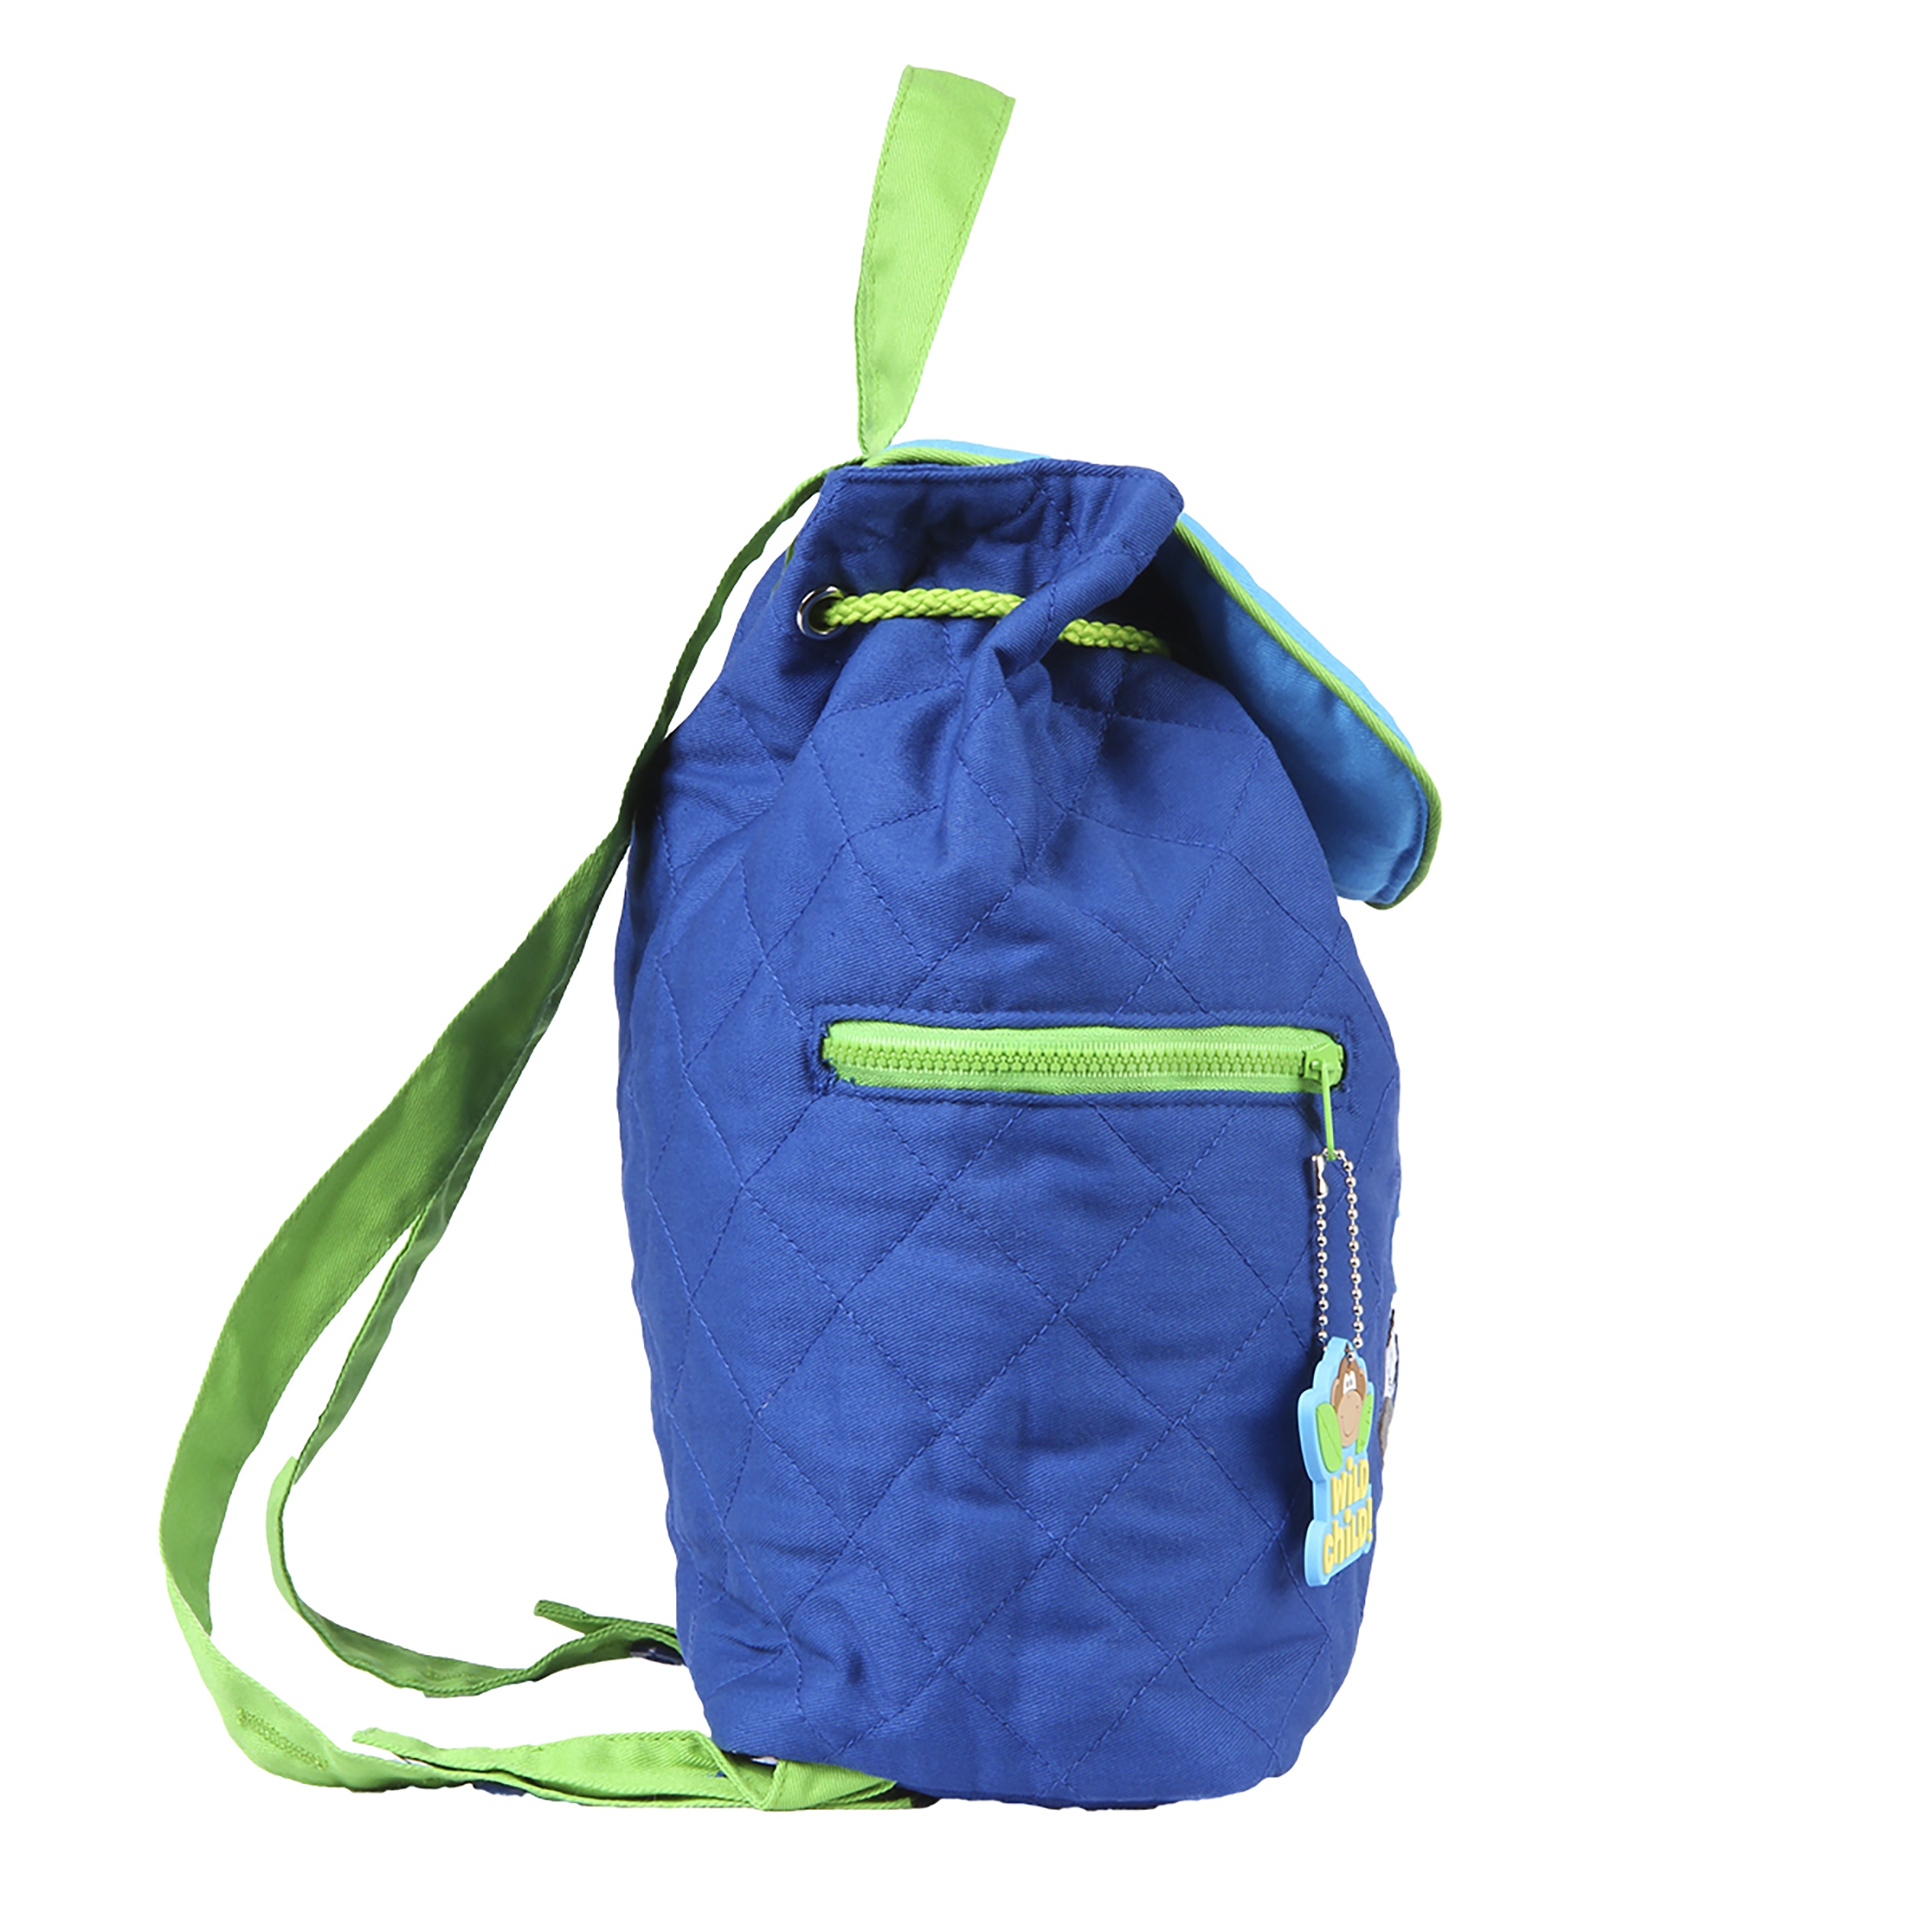 ready to ship Quilted Backpack for Toddler Drawstring Closure Bright Airplanes